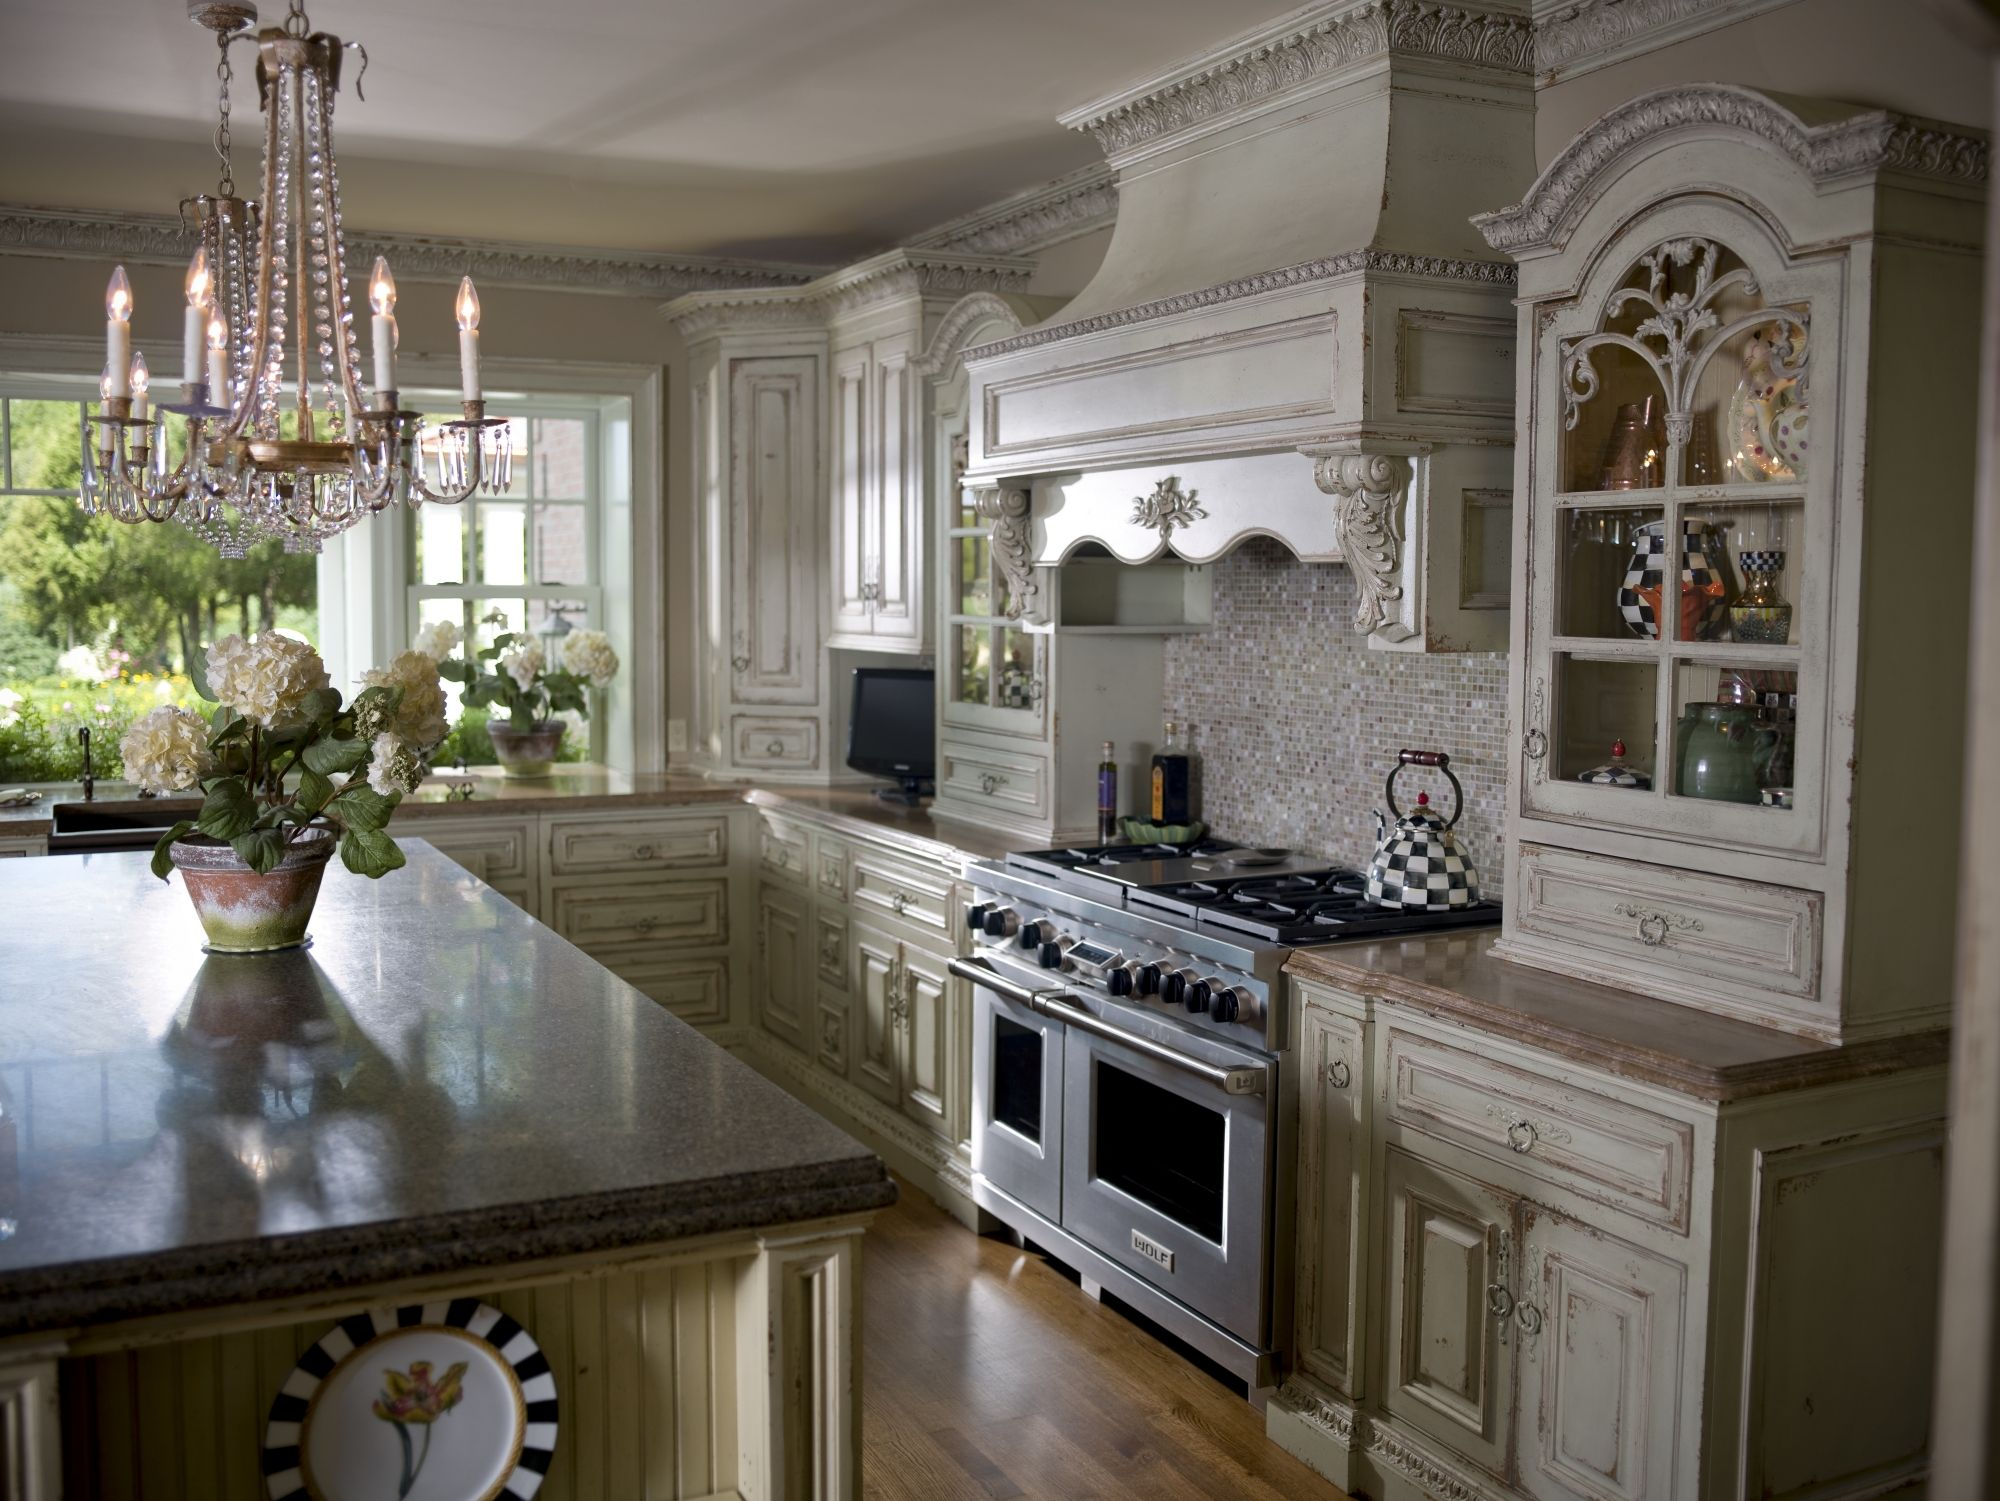 Habersham Grand European Casual Continental Kitchen Cultivate Com French Country Kitchen Cabinets Country Kitchen Cabinets Country Kitchen Designs